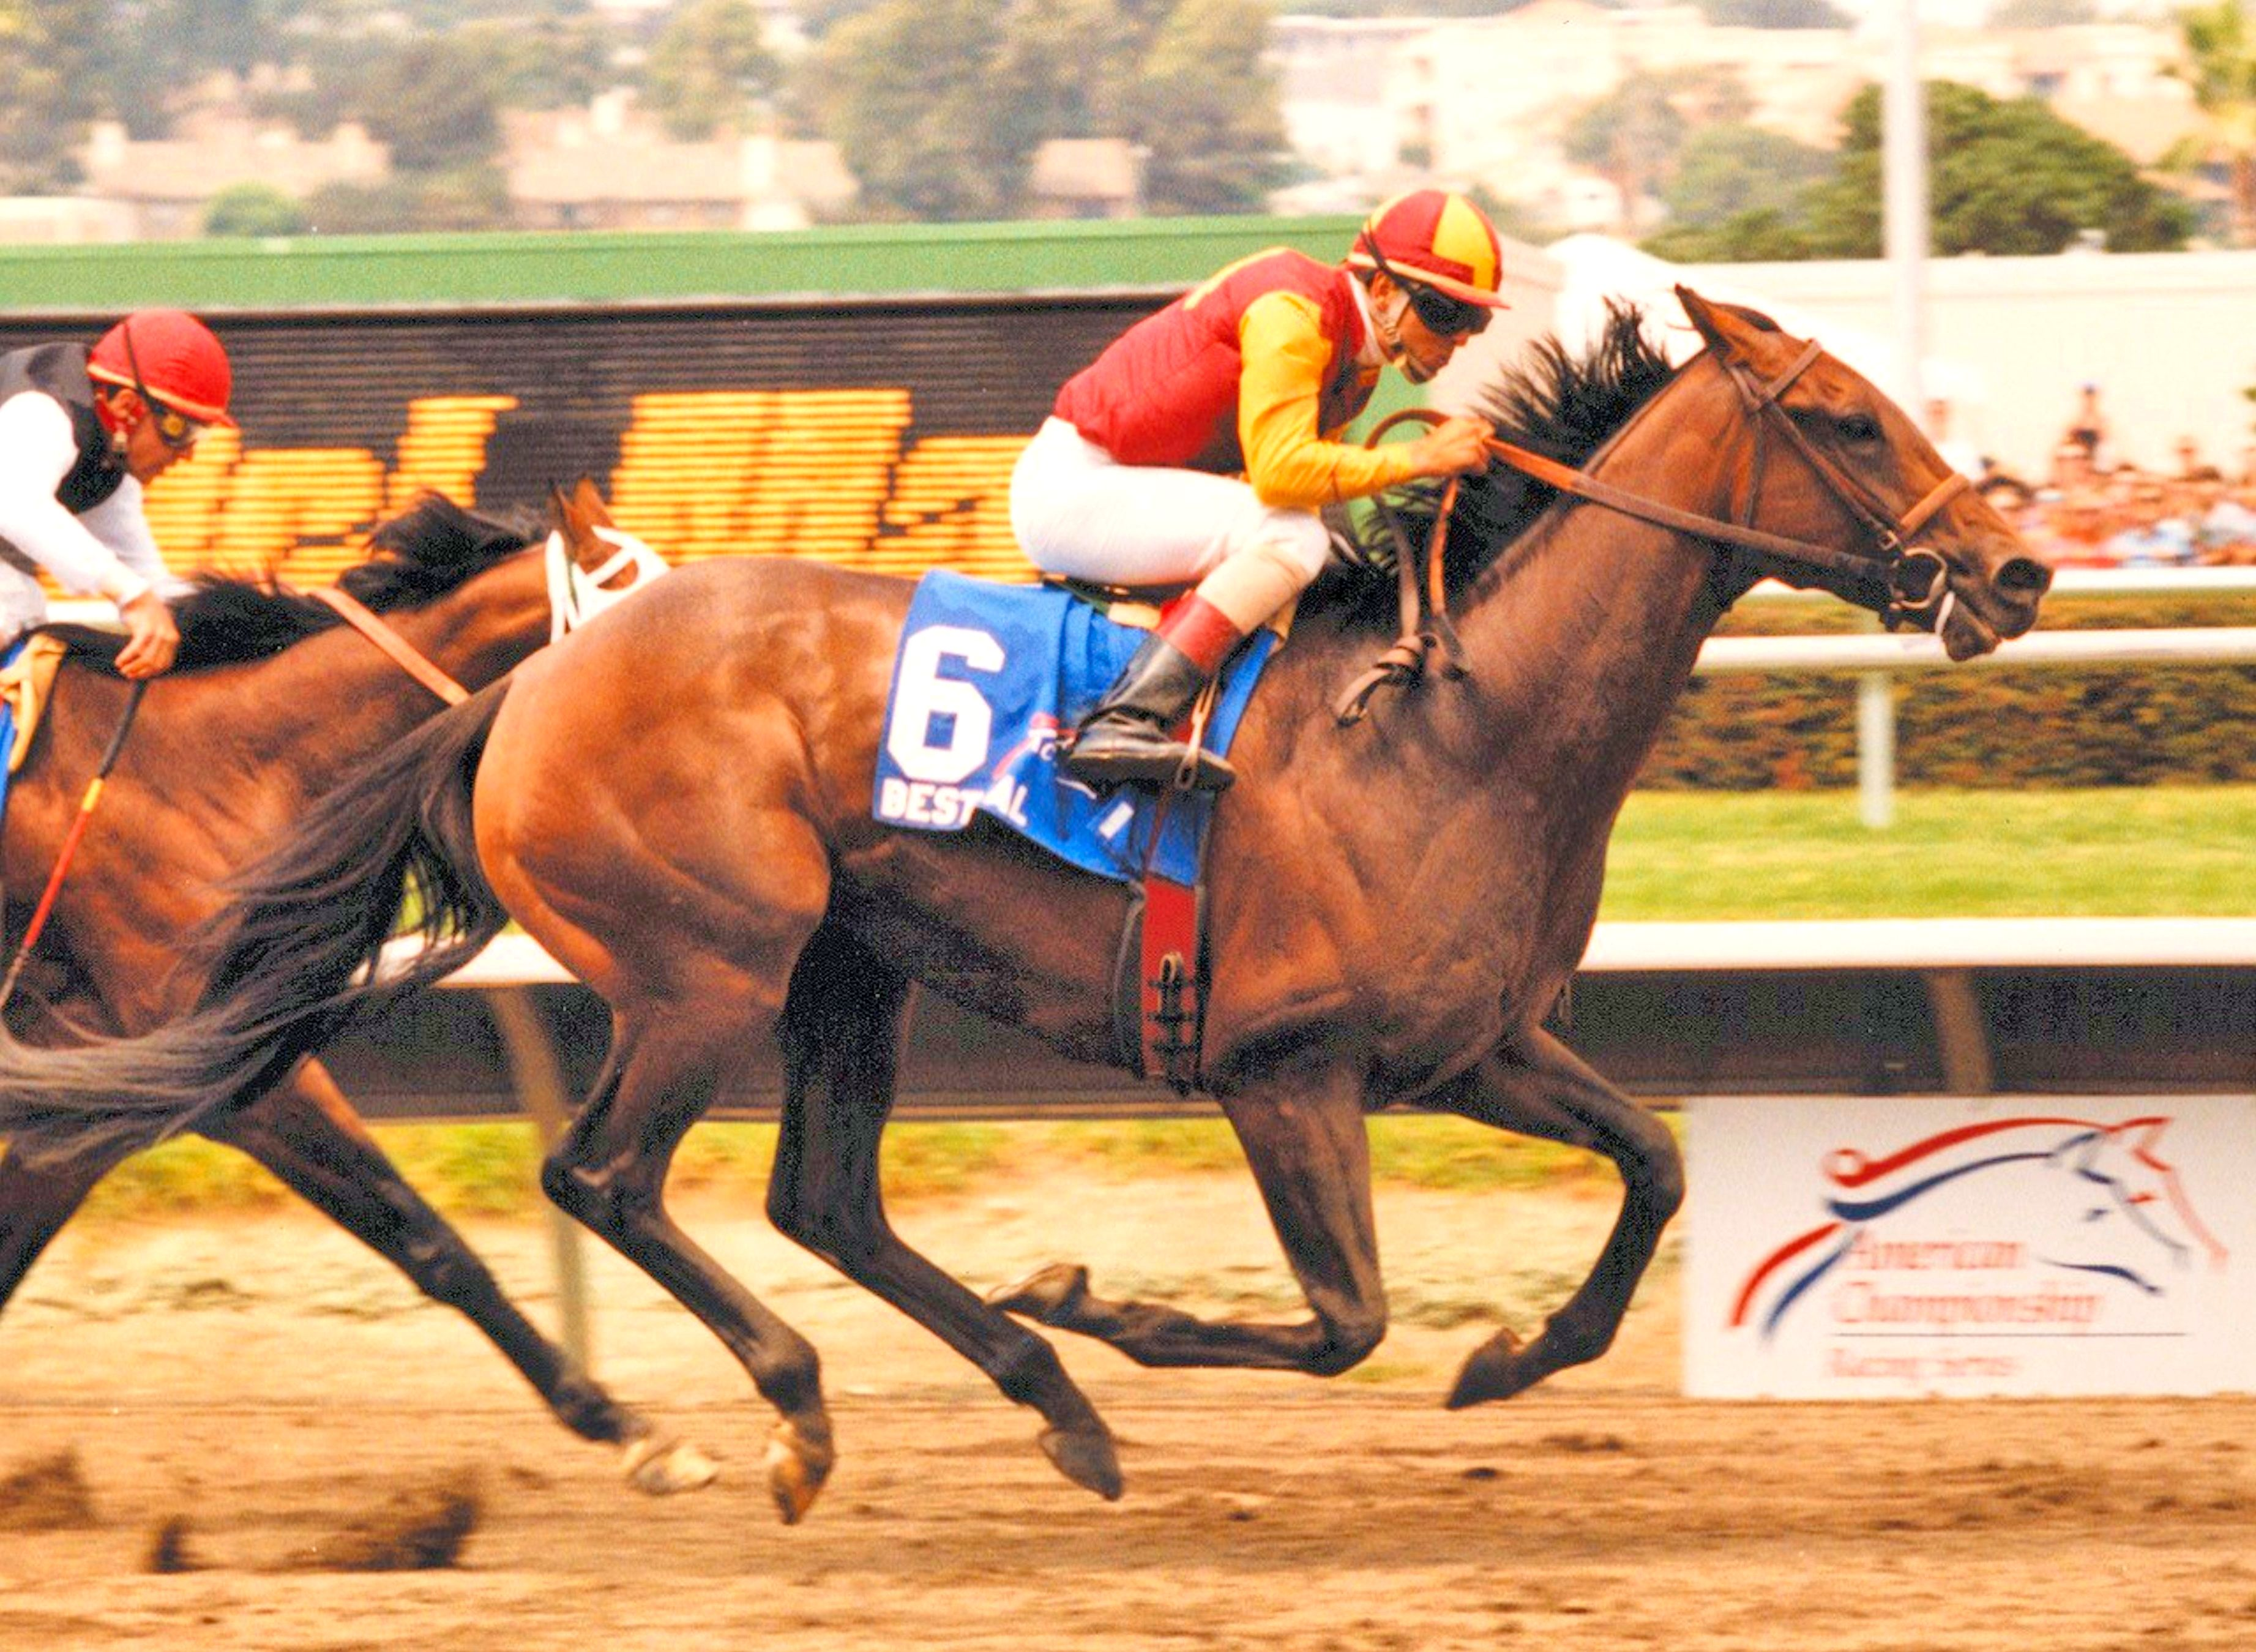 Best Pal (Patrick Valenzuela up) winning the 1991 Pacific Classic at Del Mar (Del Mar Thoroughbred Club)